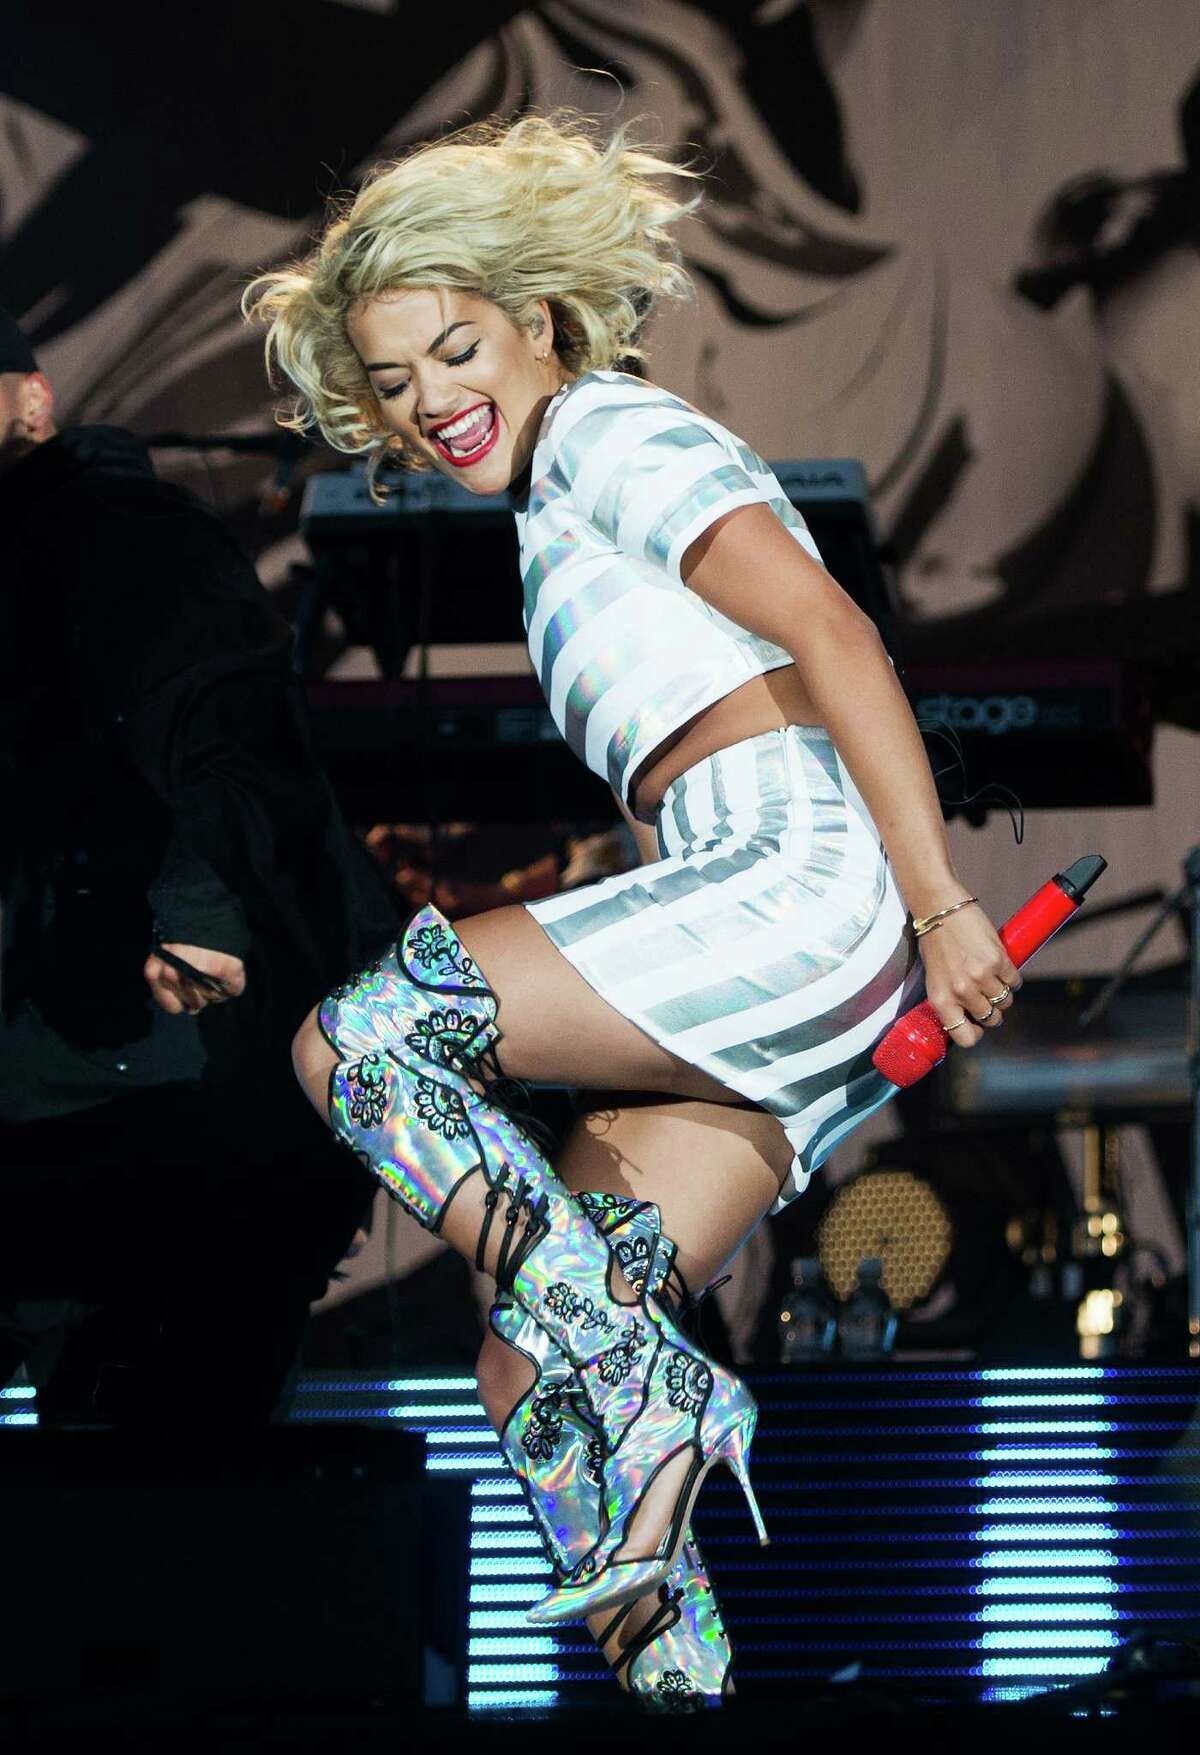 Rita Ora performs live on the 4 Music Stage on day 2 of V Festival at Hylands Park on Aug. 18, 2013 in Chelmsford, England.